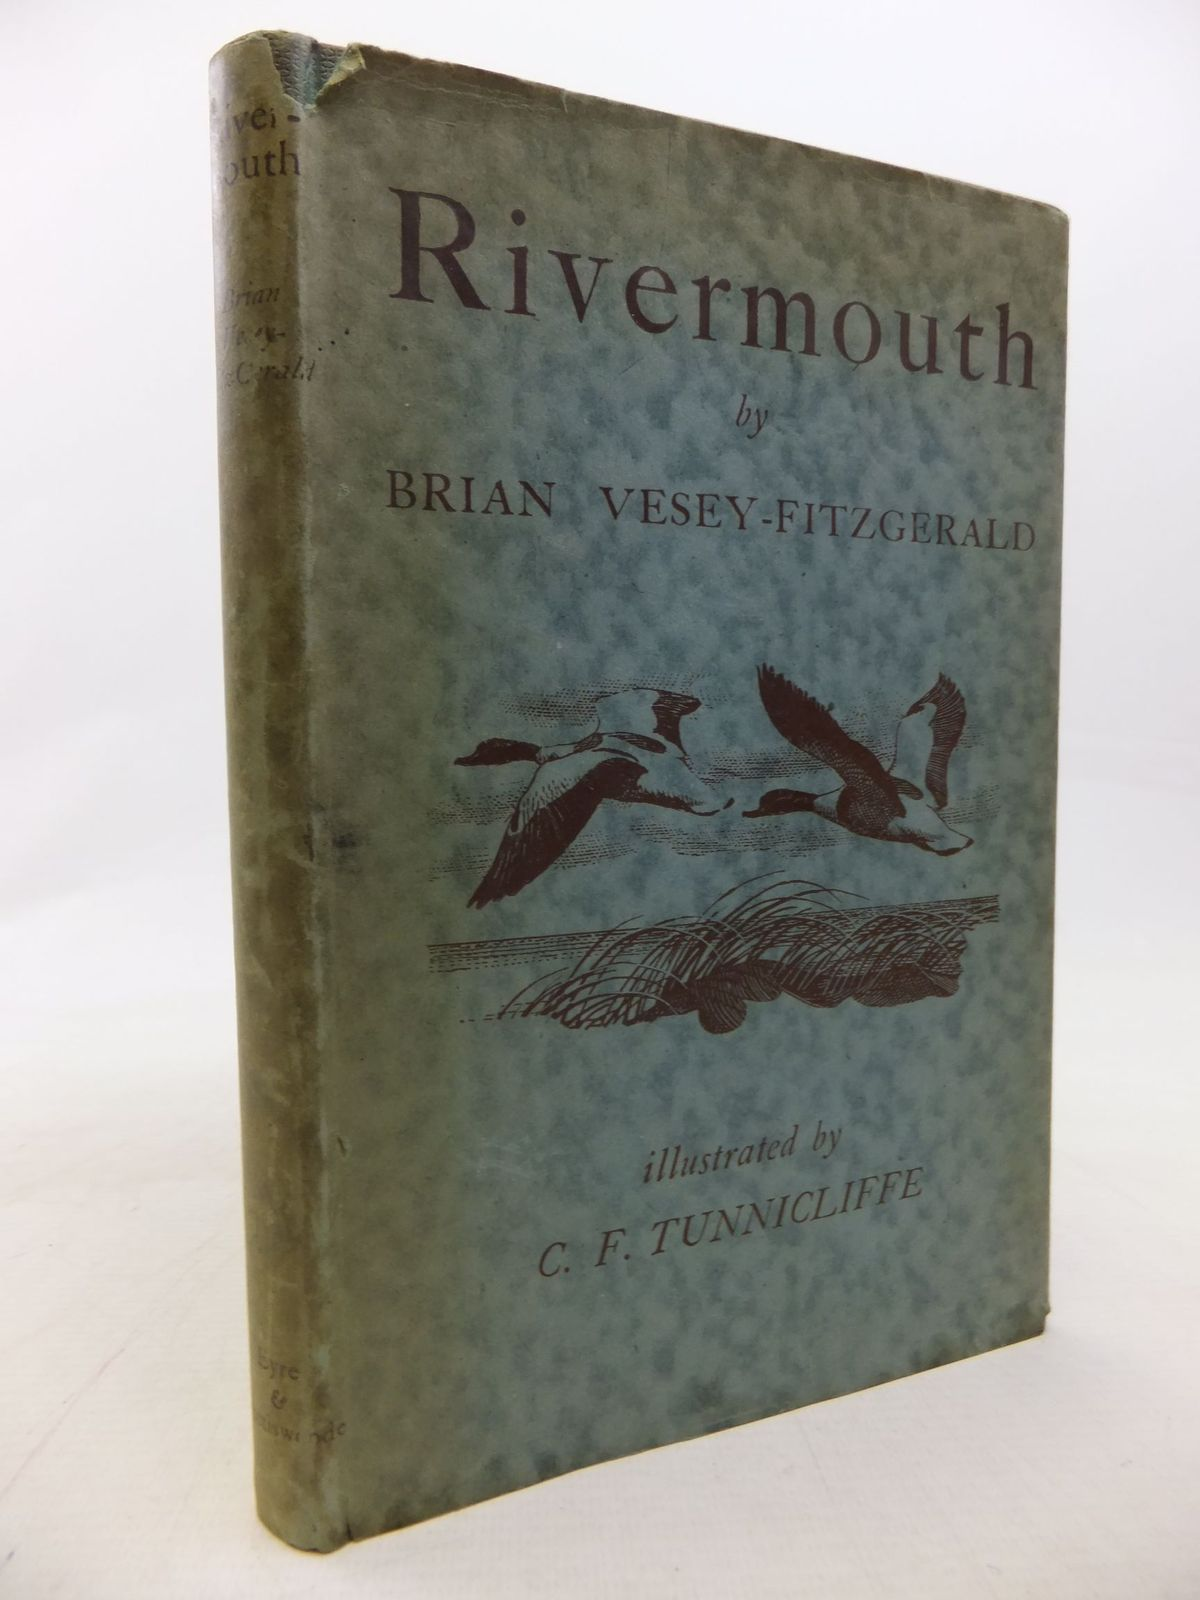 Photo of RIVERMOUTH written by Vesey-Fitzgerald, Brian illustrated by Tunnicliffe, C.F. published by Eyre & Spottiswoode (STOCK CODE: 1711670)  for sale by Stella & Rose's Books